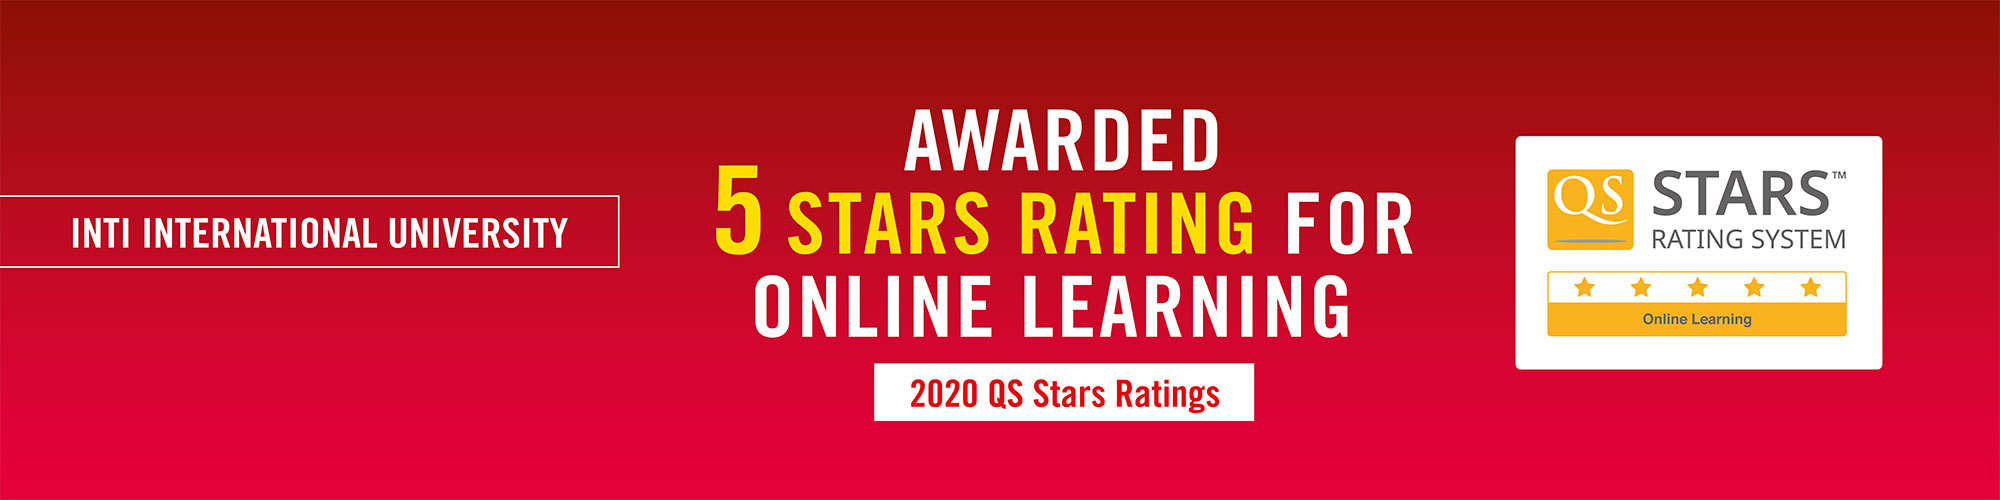 5 QS Stars Rating For Online Courses Learning - INTI University Malaysia